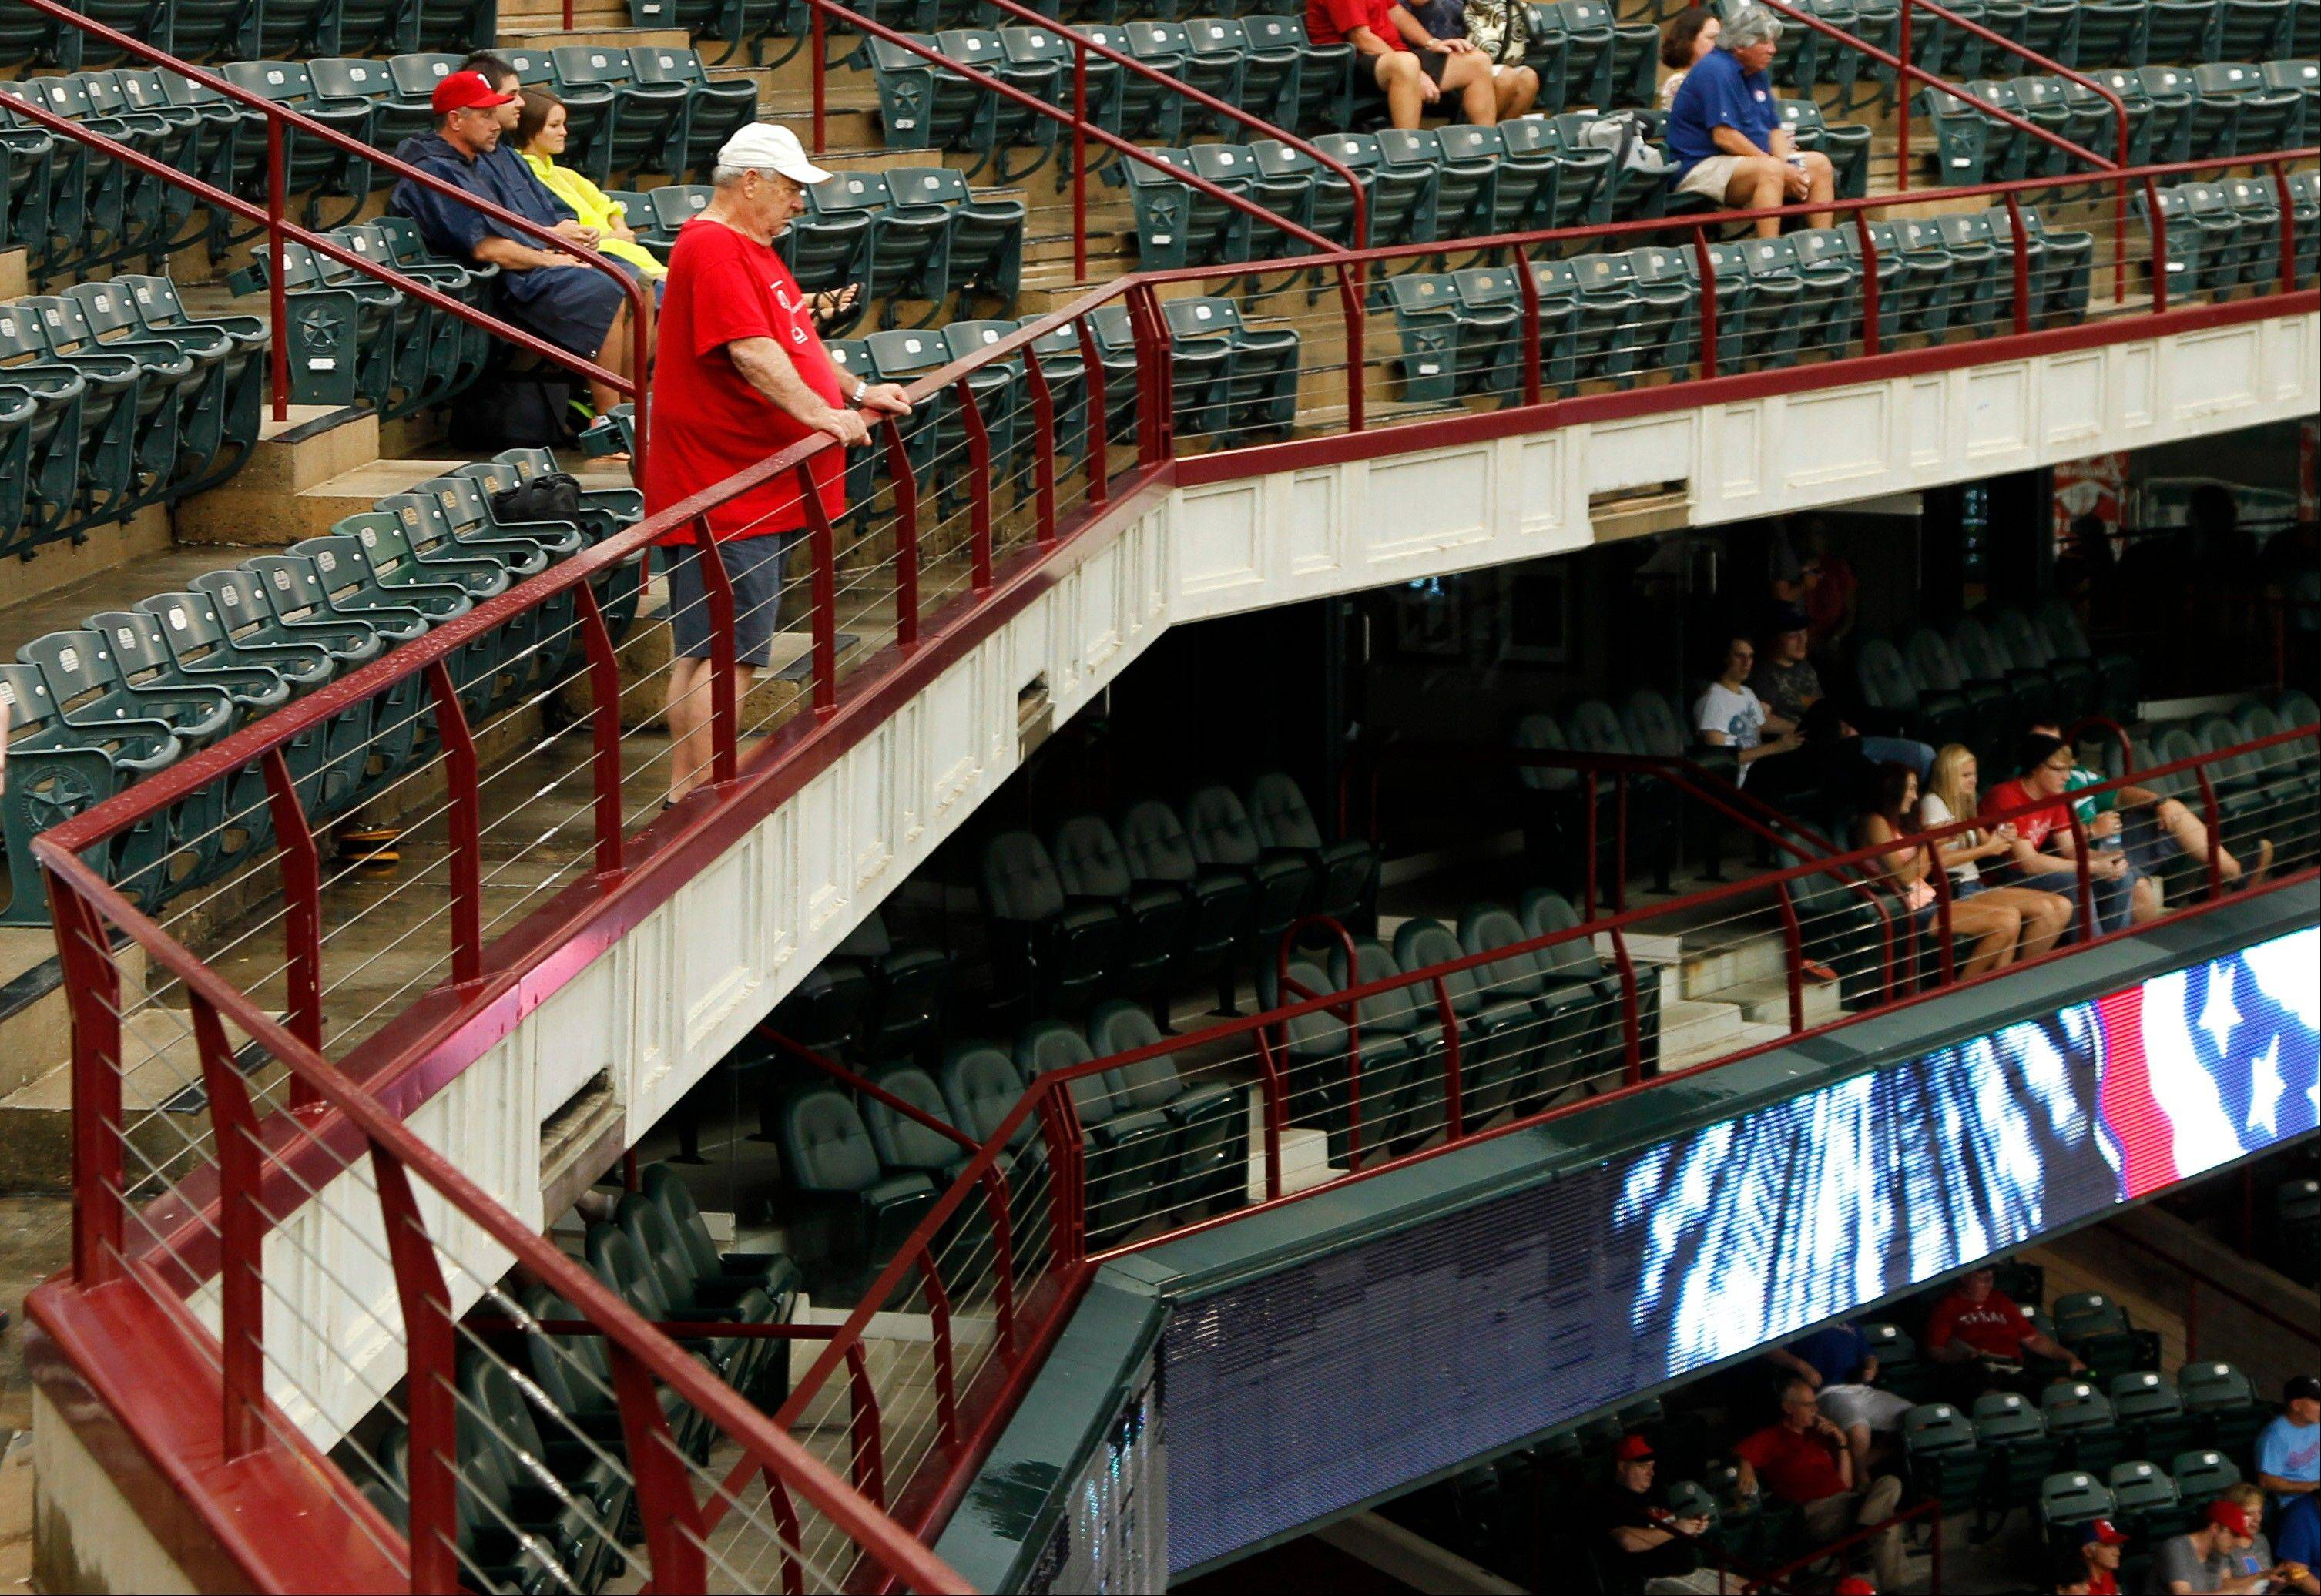 A fan stands on the clubhouse level of Rangers Ballpark in Arlington, Texas, on Tuesday. In 2011, a fan died there in fall from the left-field seats.